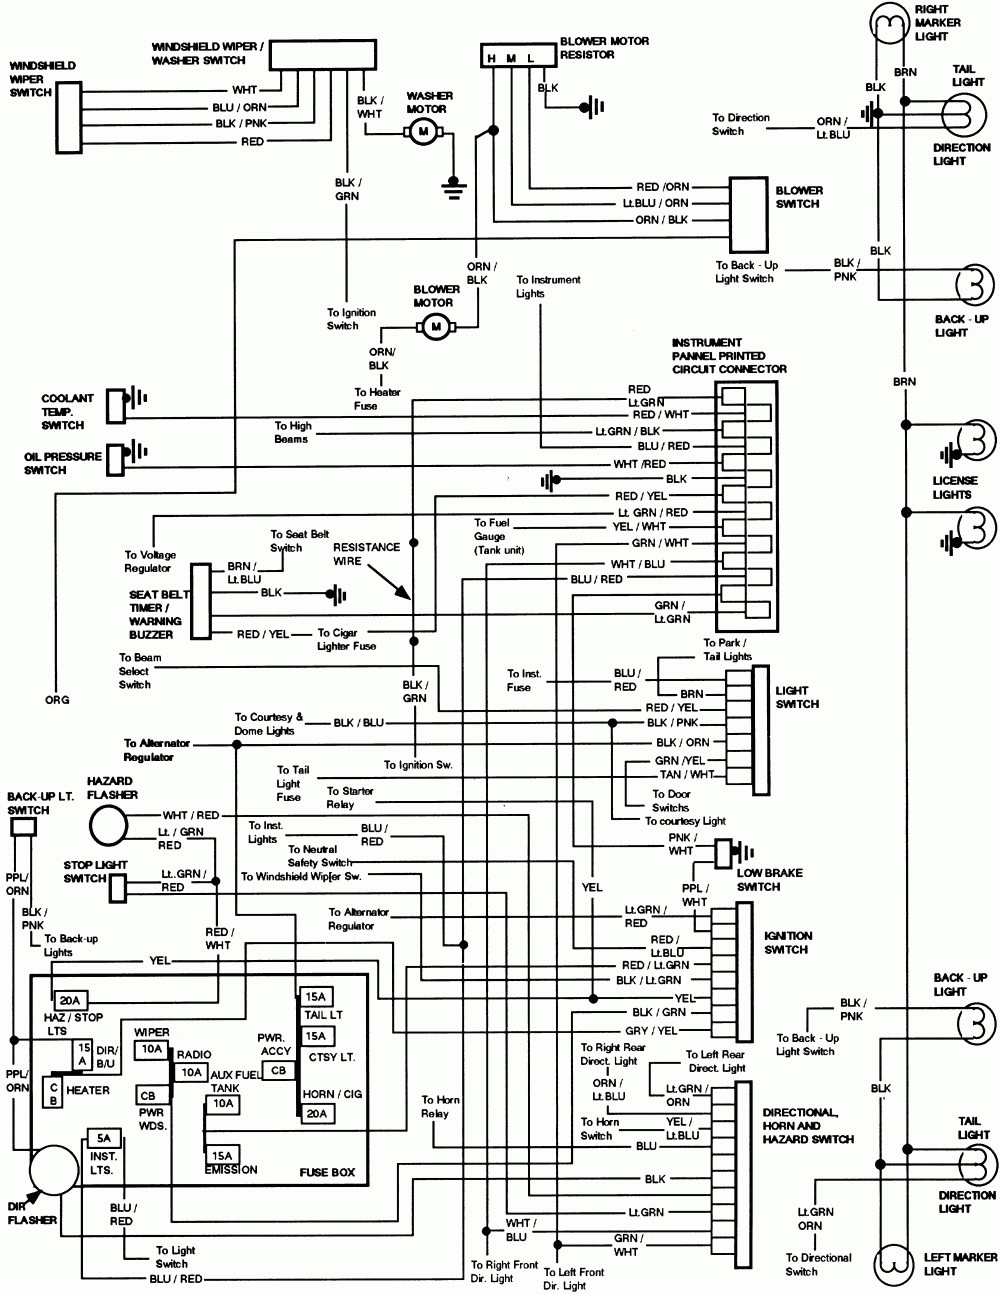 [DIAGRAM_34OR]  WRG-8765] Ford L9000 Wiring Diagram | 1984 Ford L9000 Truck Wiring Diagrams |  | kamilagreatgallery-090805.mx.tl